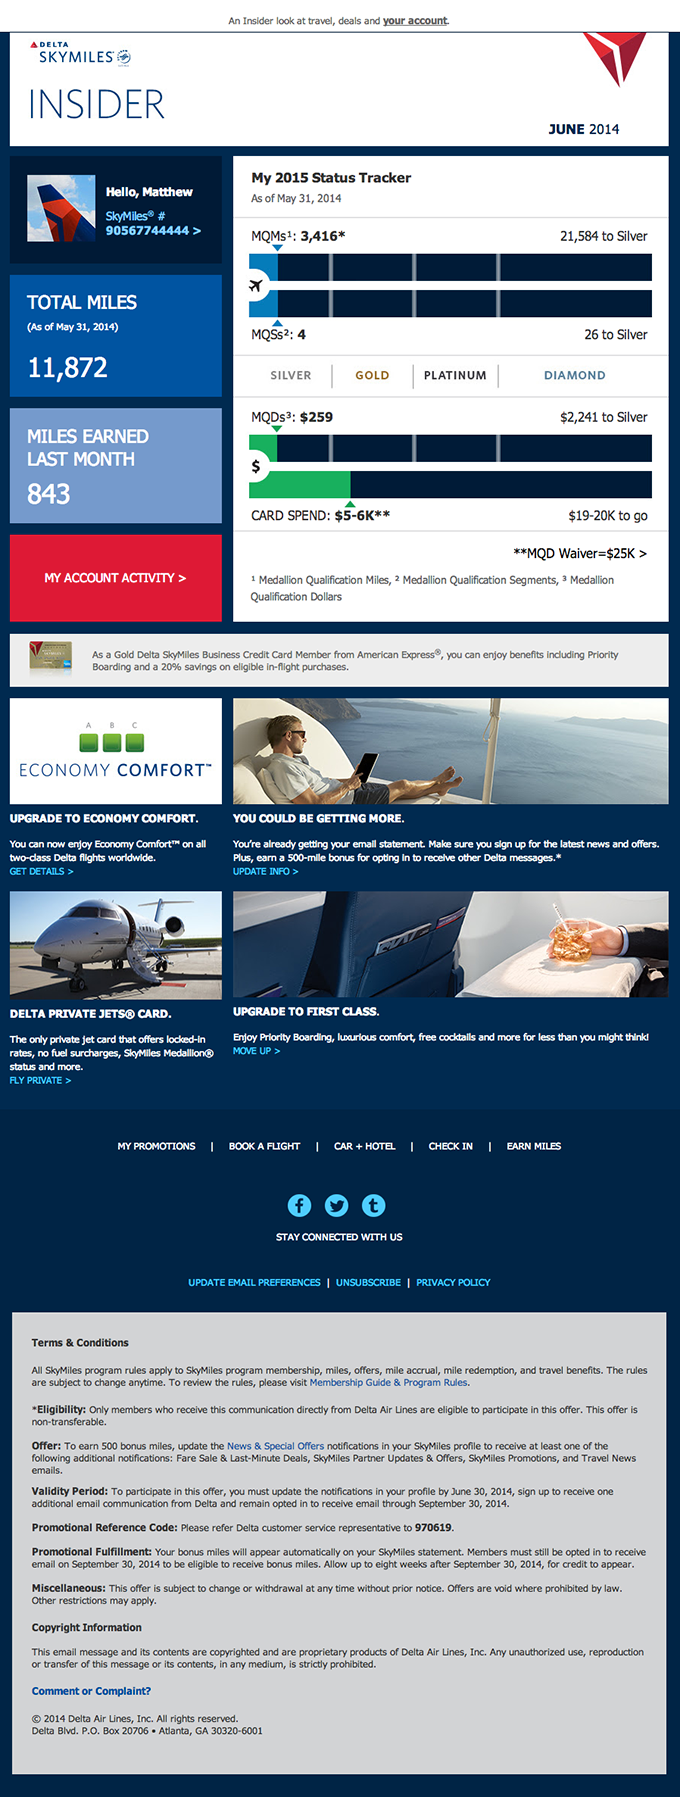 Complex Responsive Account Update Email from Delta